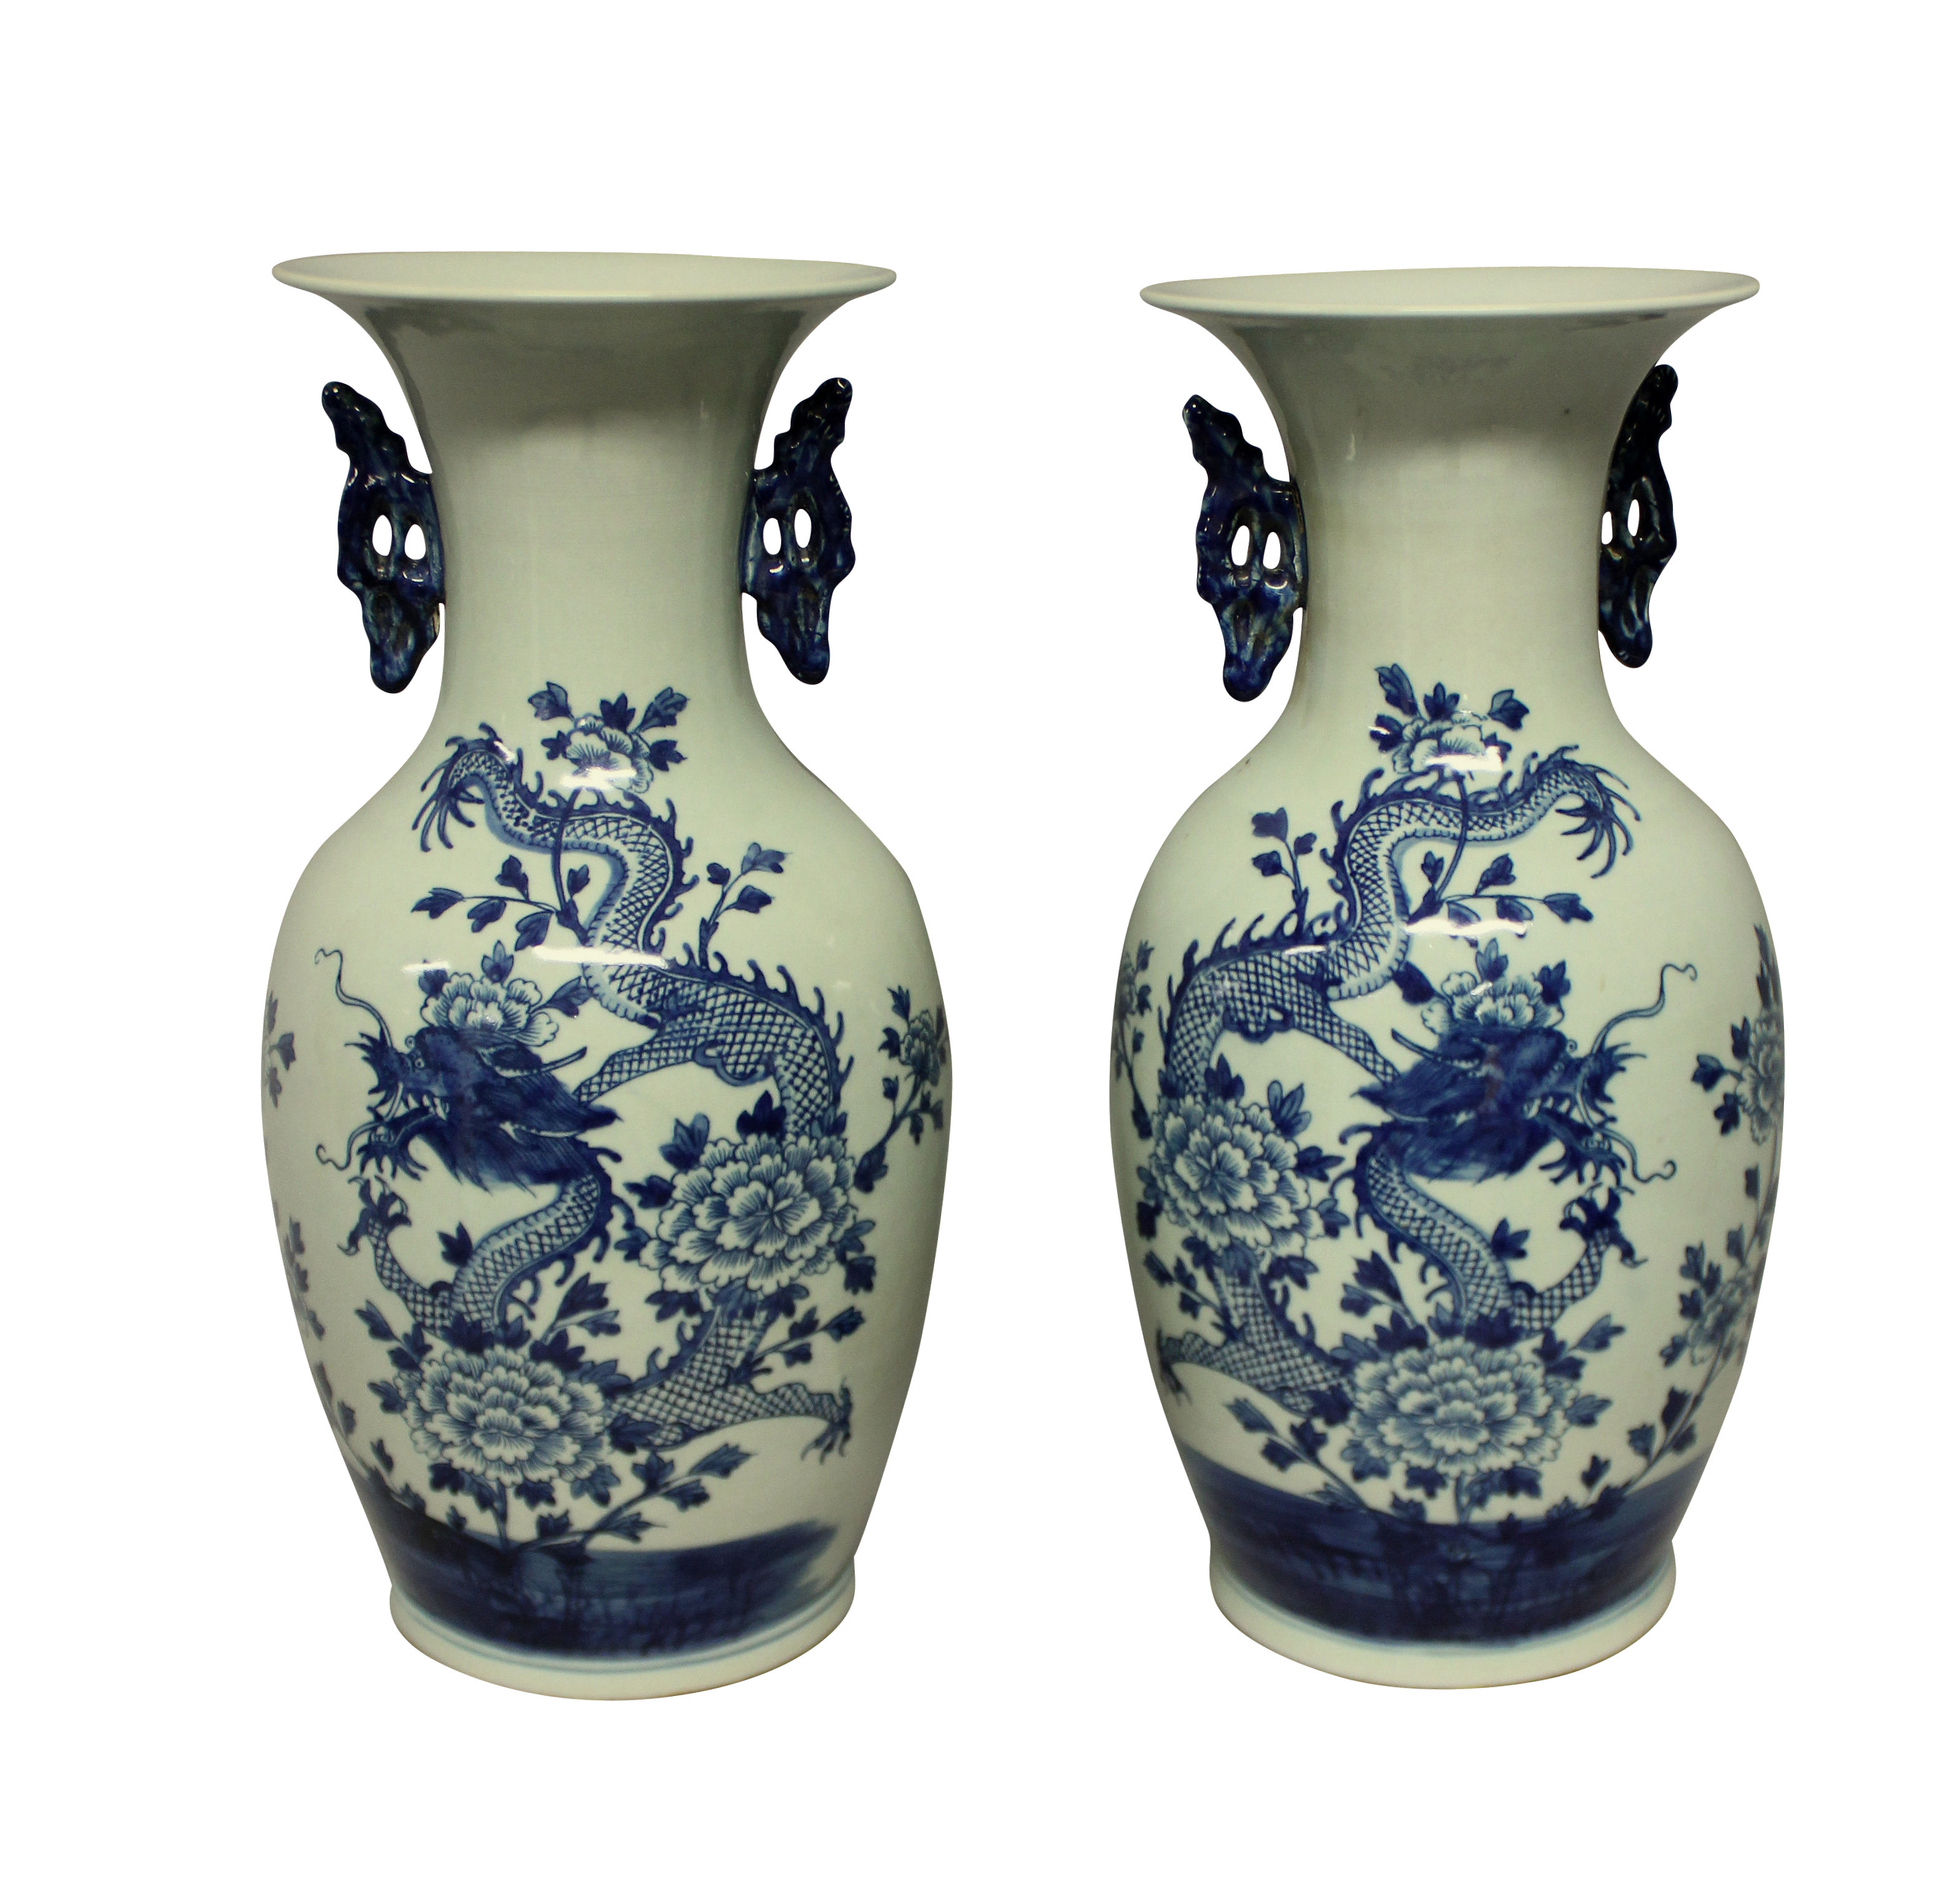 A PAIR OF BLUE & WHITE CHINESE VASES